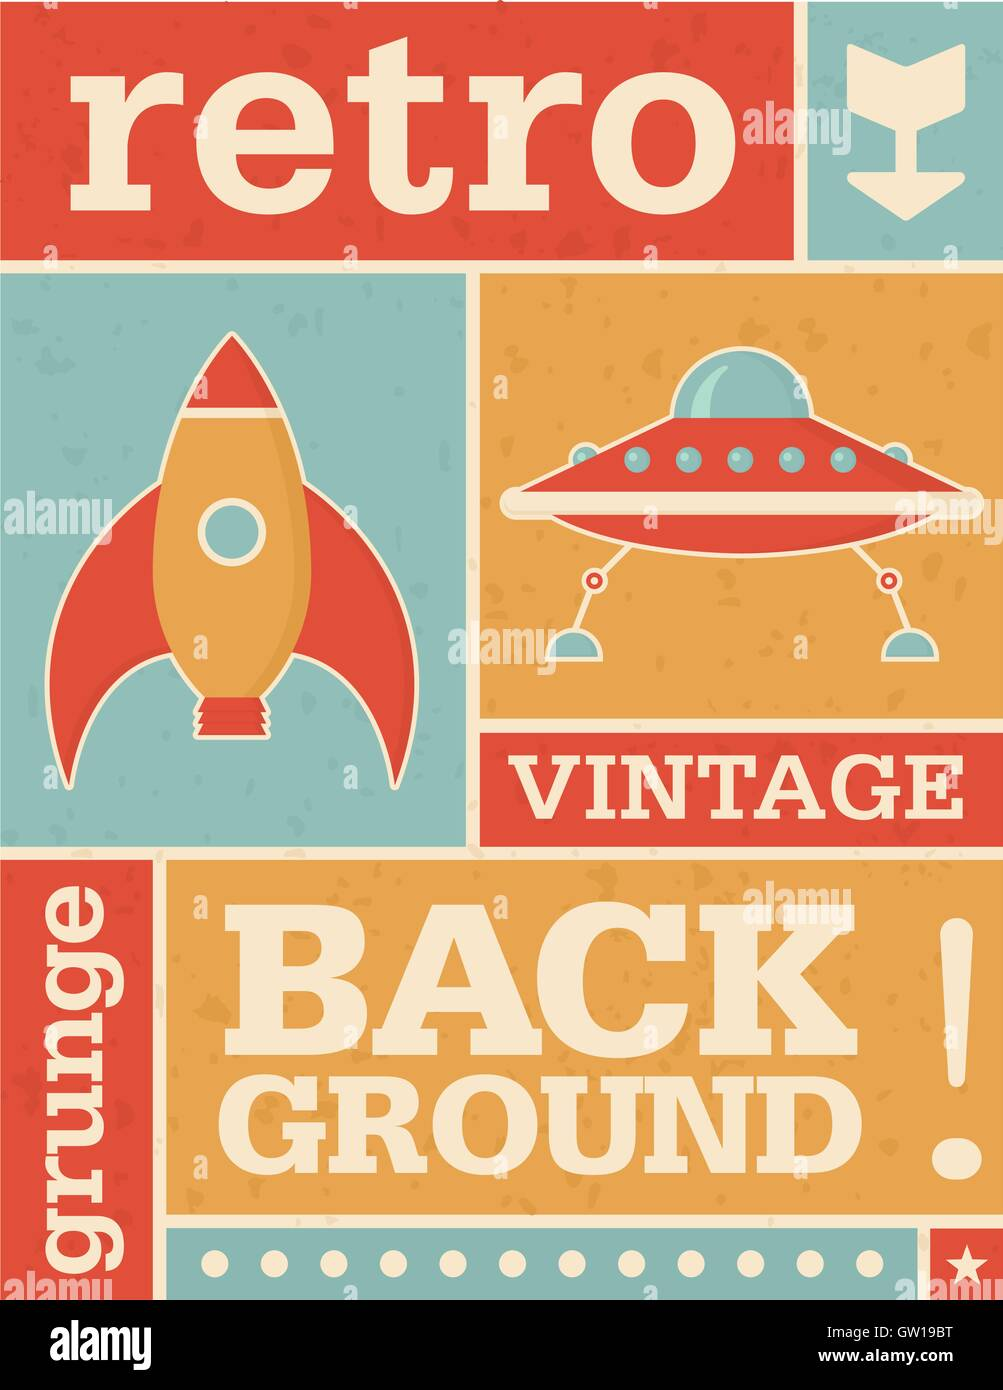 retro grunge background template for invitations ads etc includes